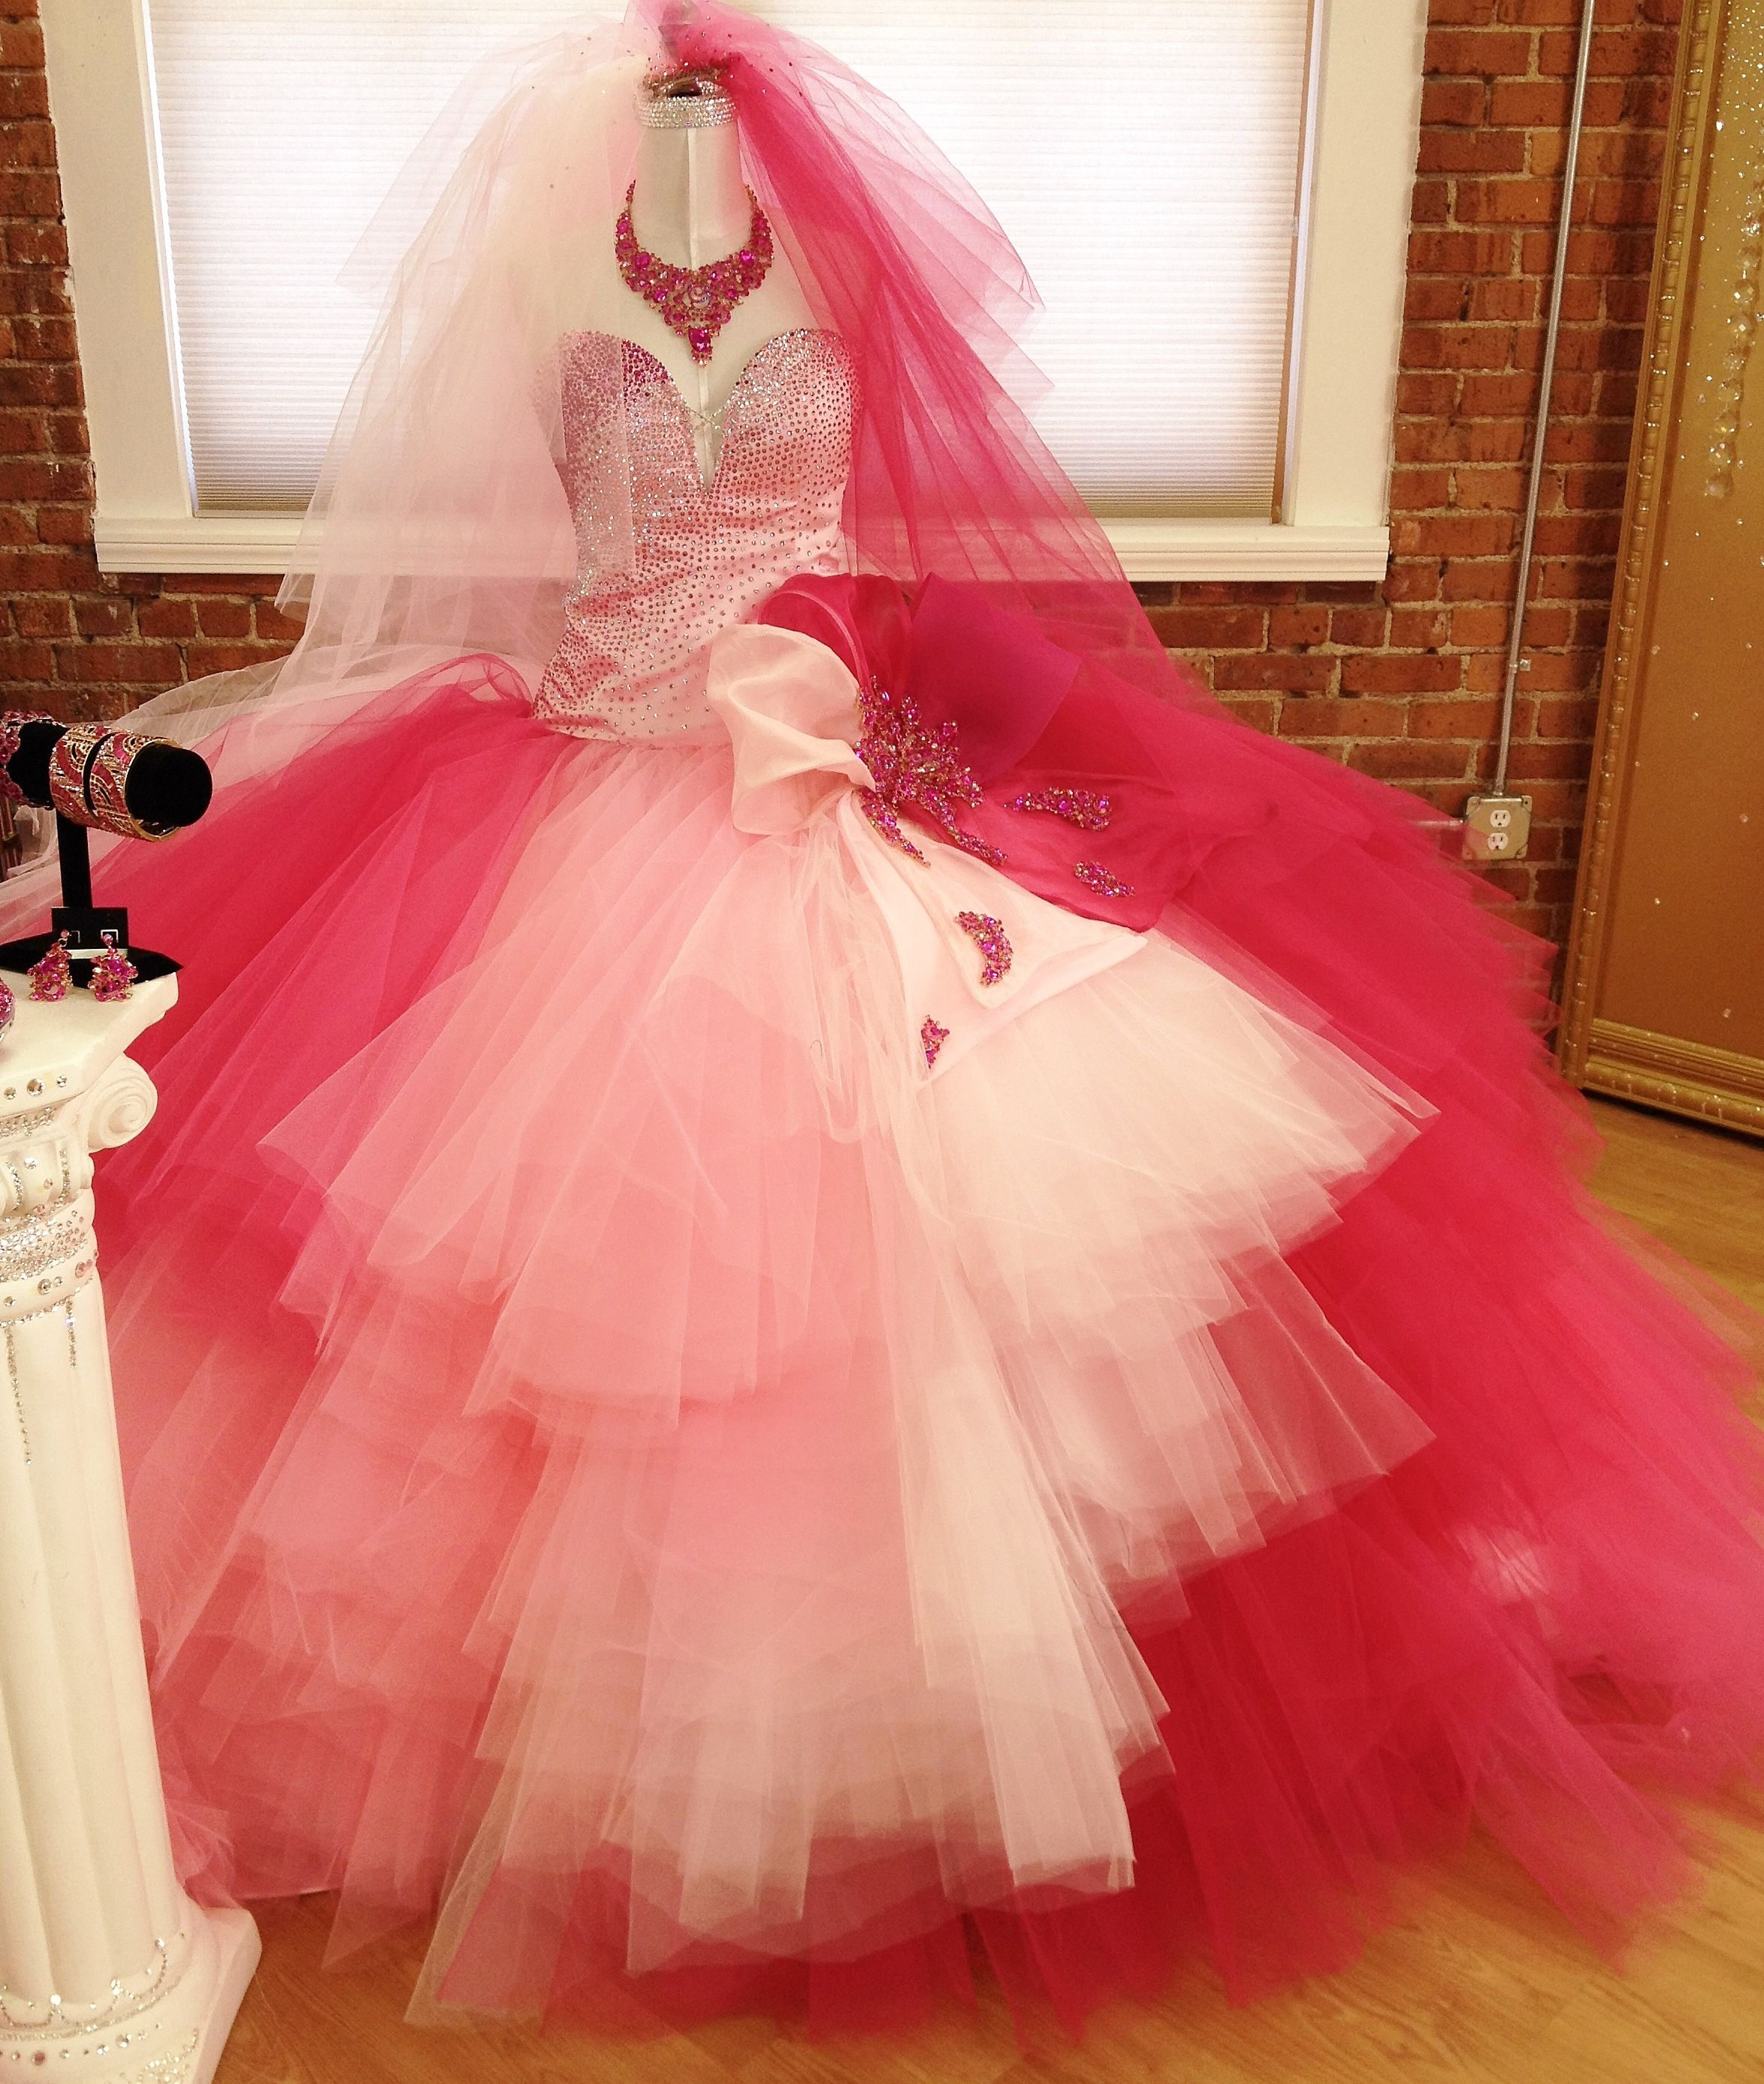 Pink ombr gypsy wedding dress by crystal couture designer for Big gypsy wedding dresses for sale